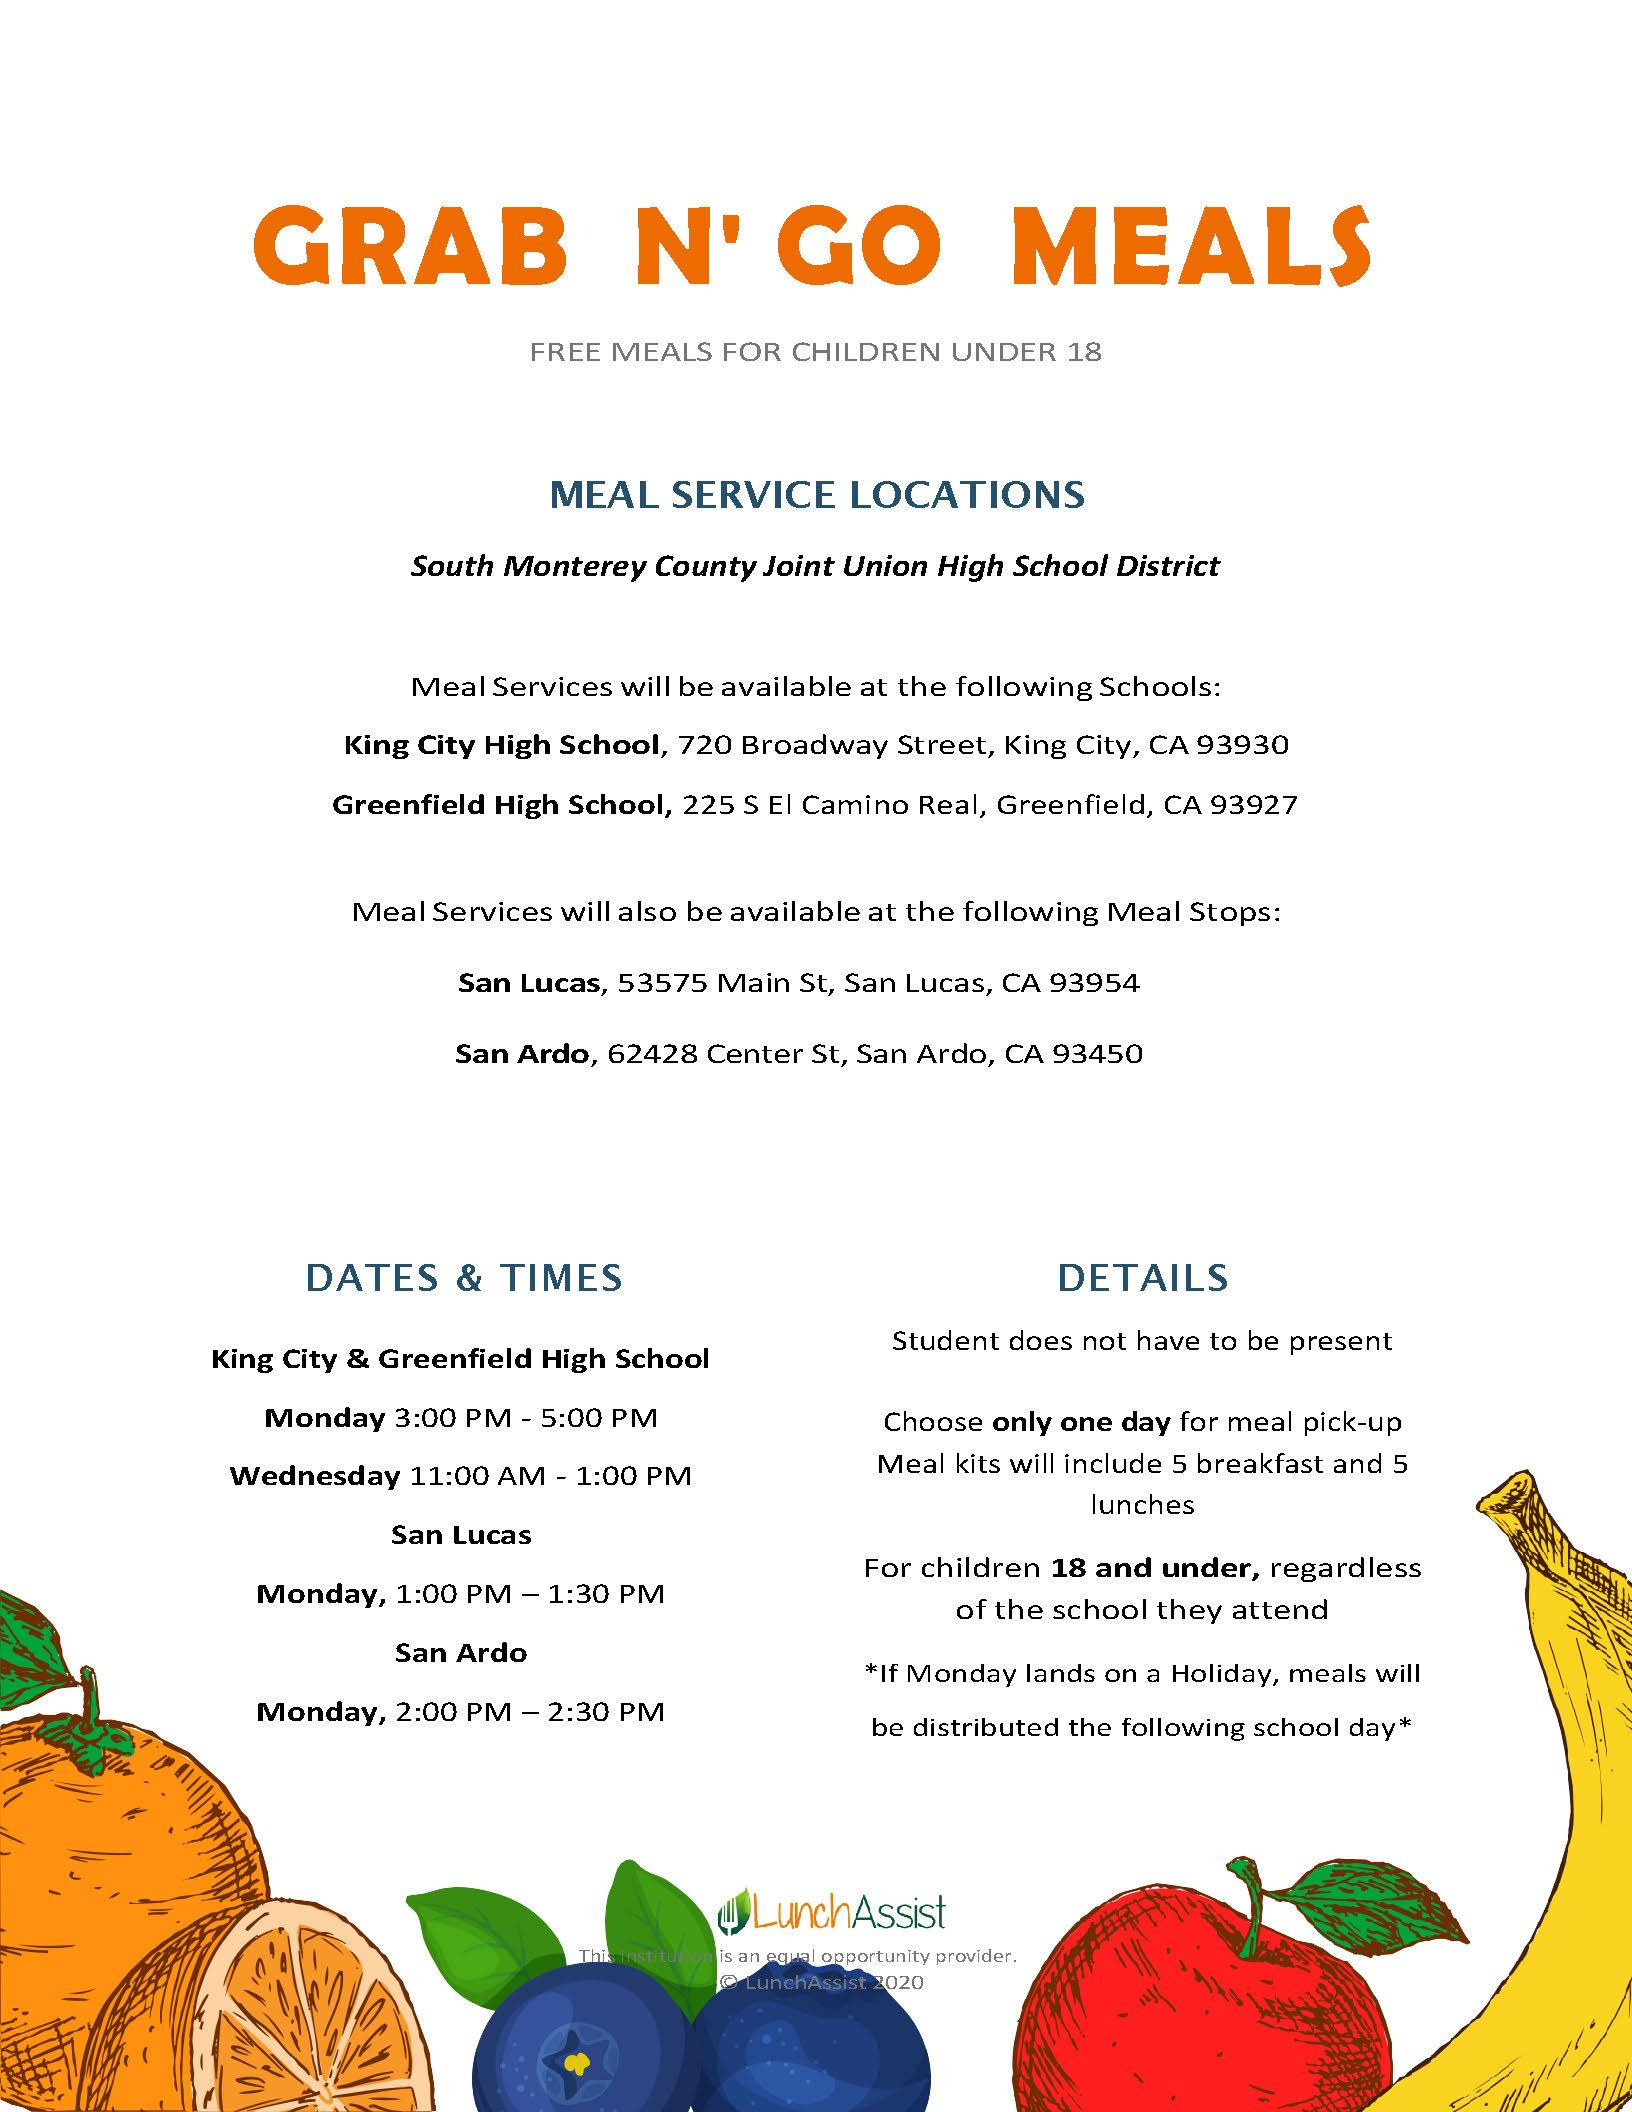 Take Home Meals dates and times